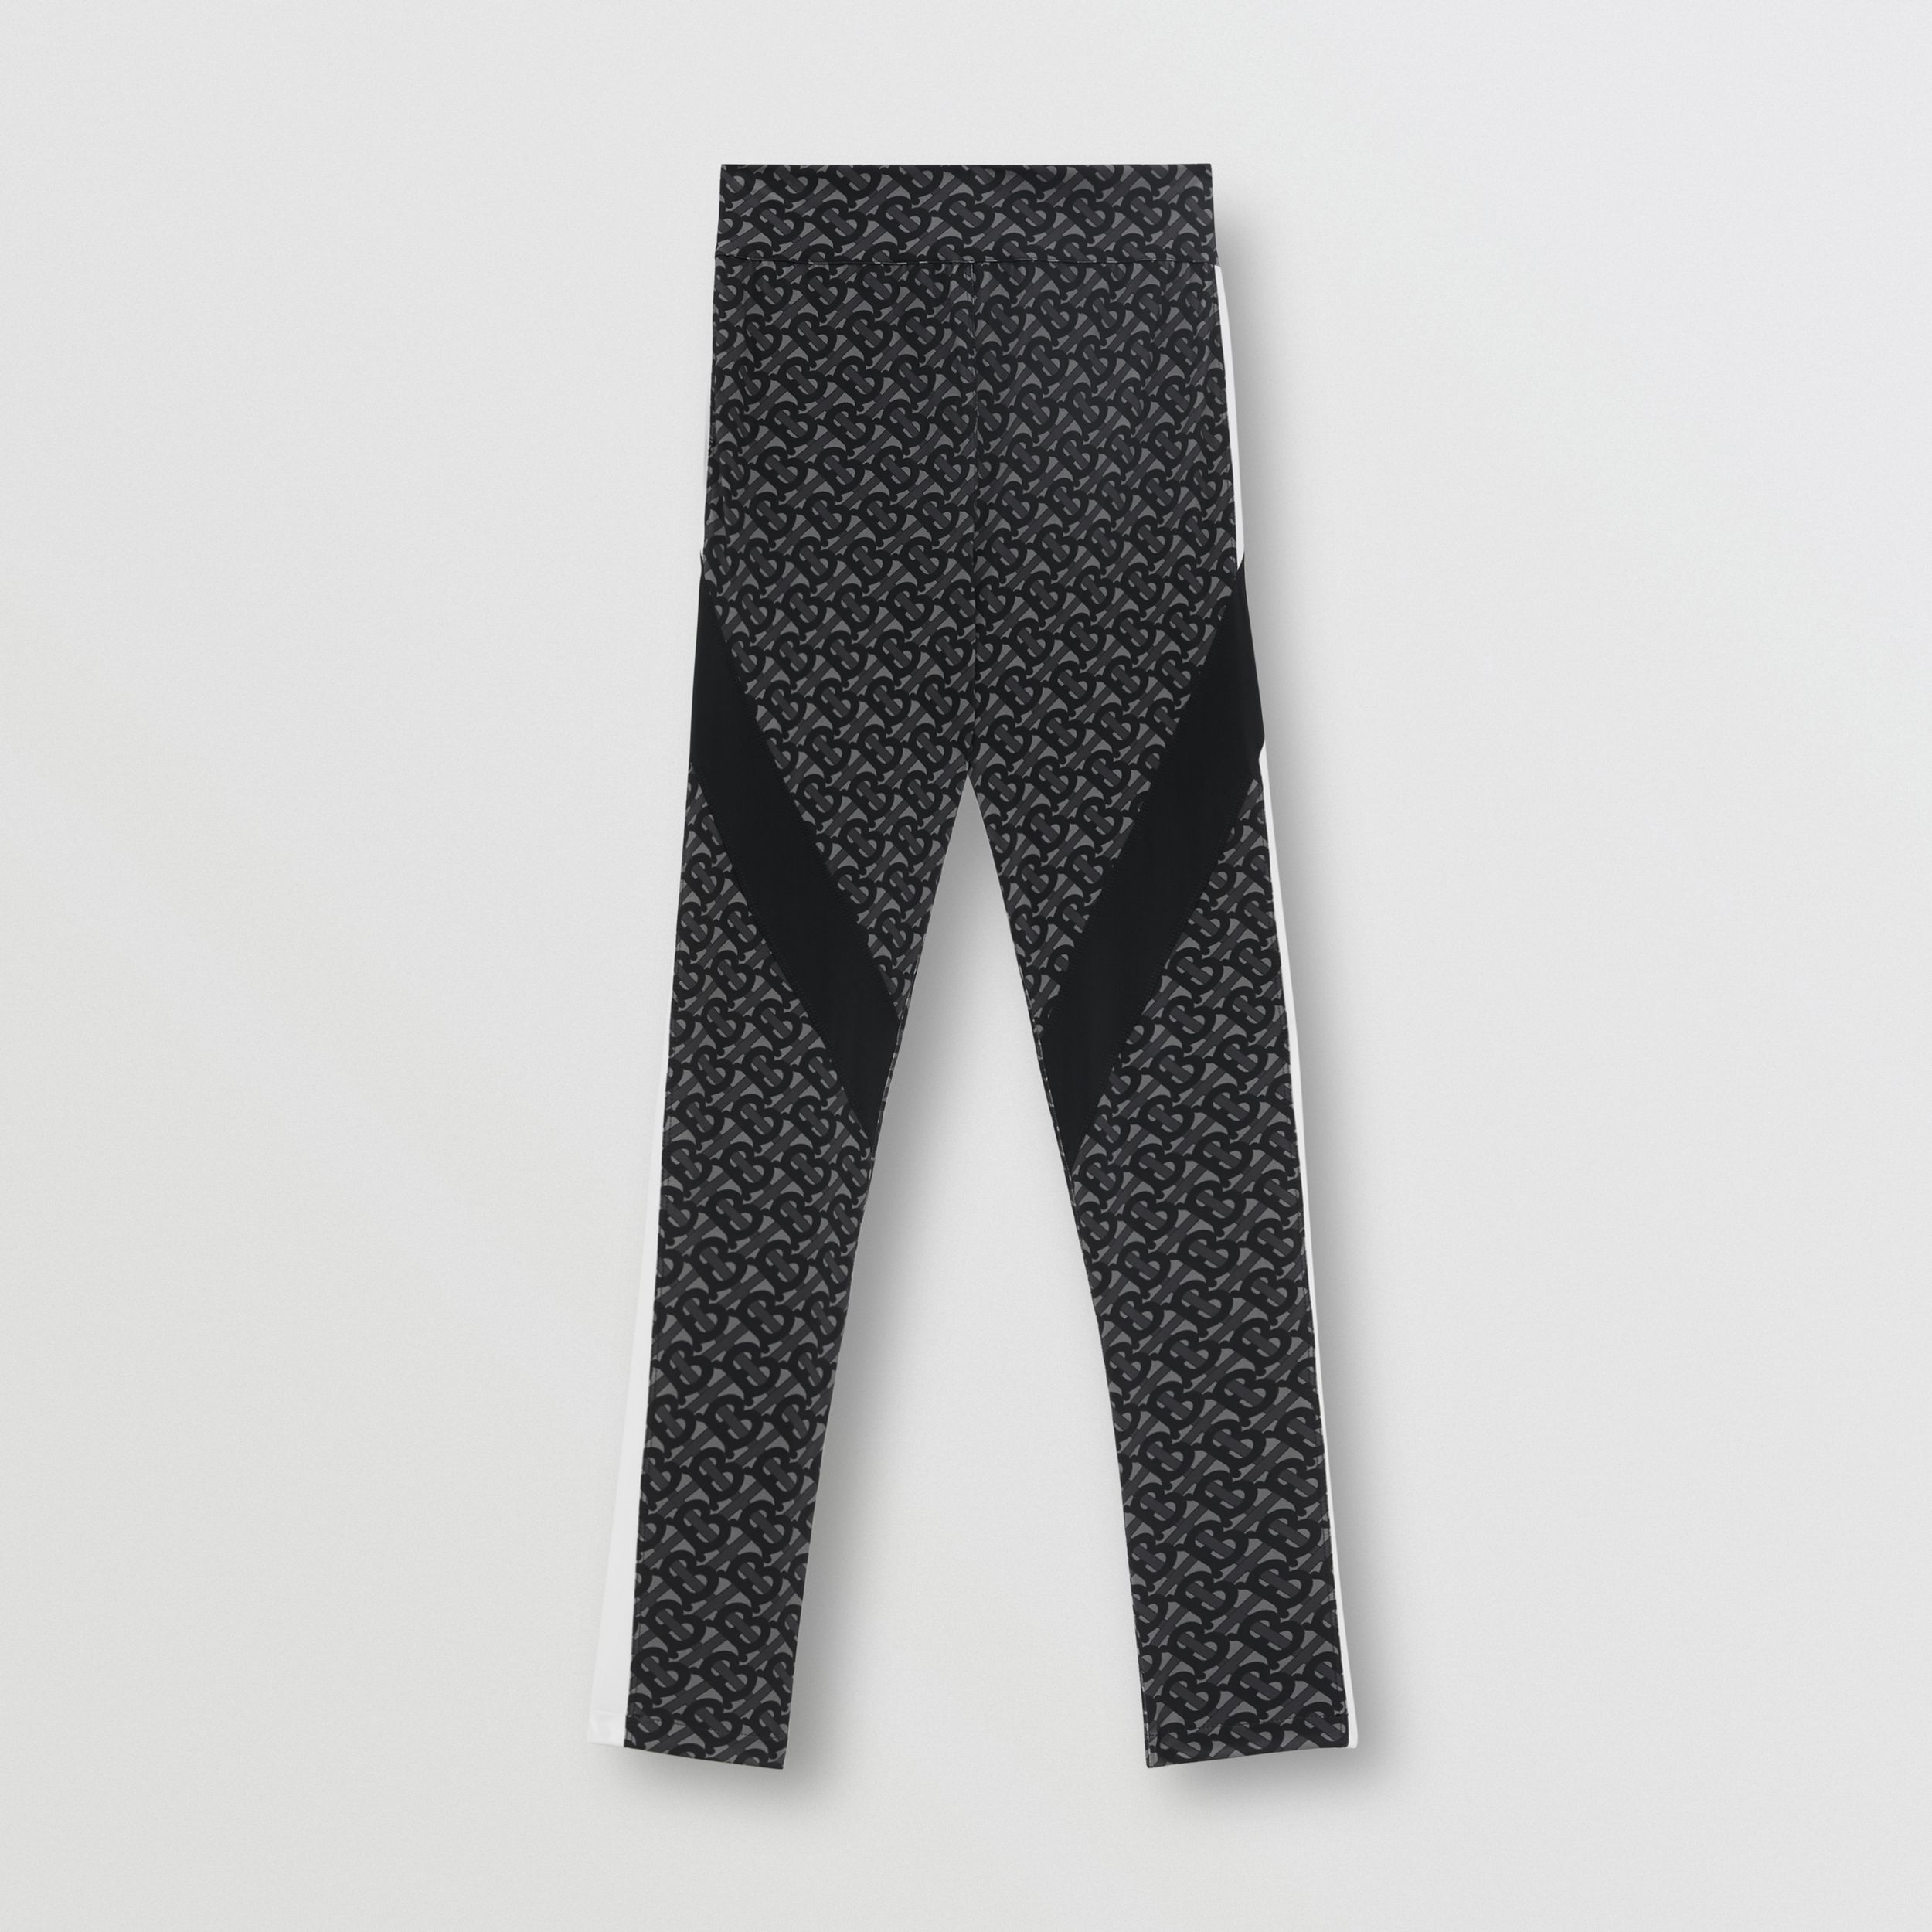 Colour Block Monogram Print Stretch Jersey Leggings in Graphite - Women | Burberry - 4